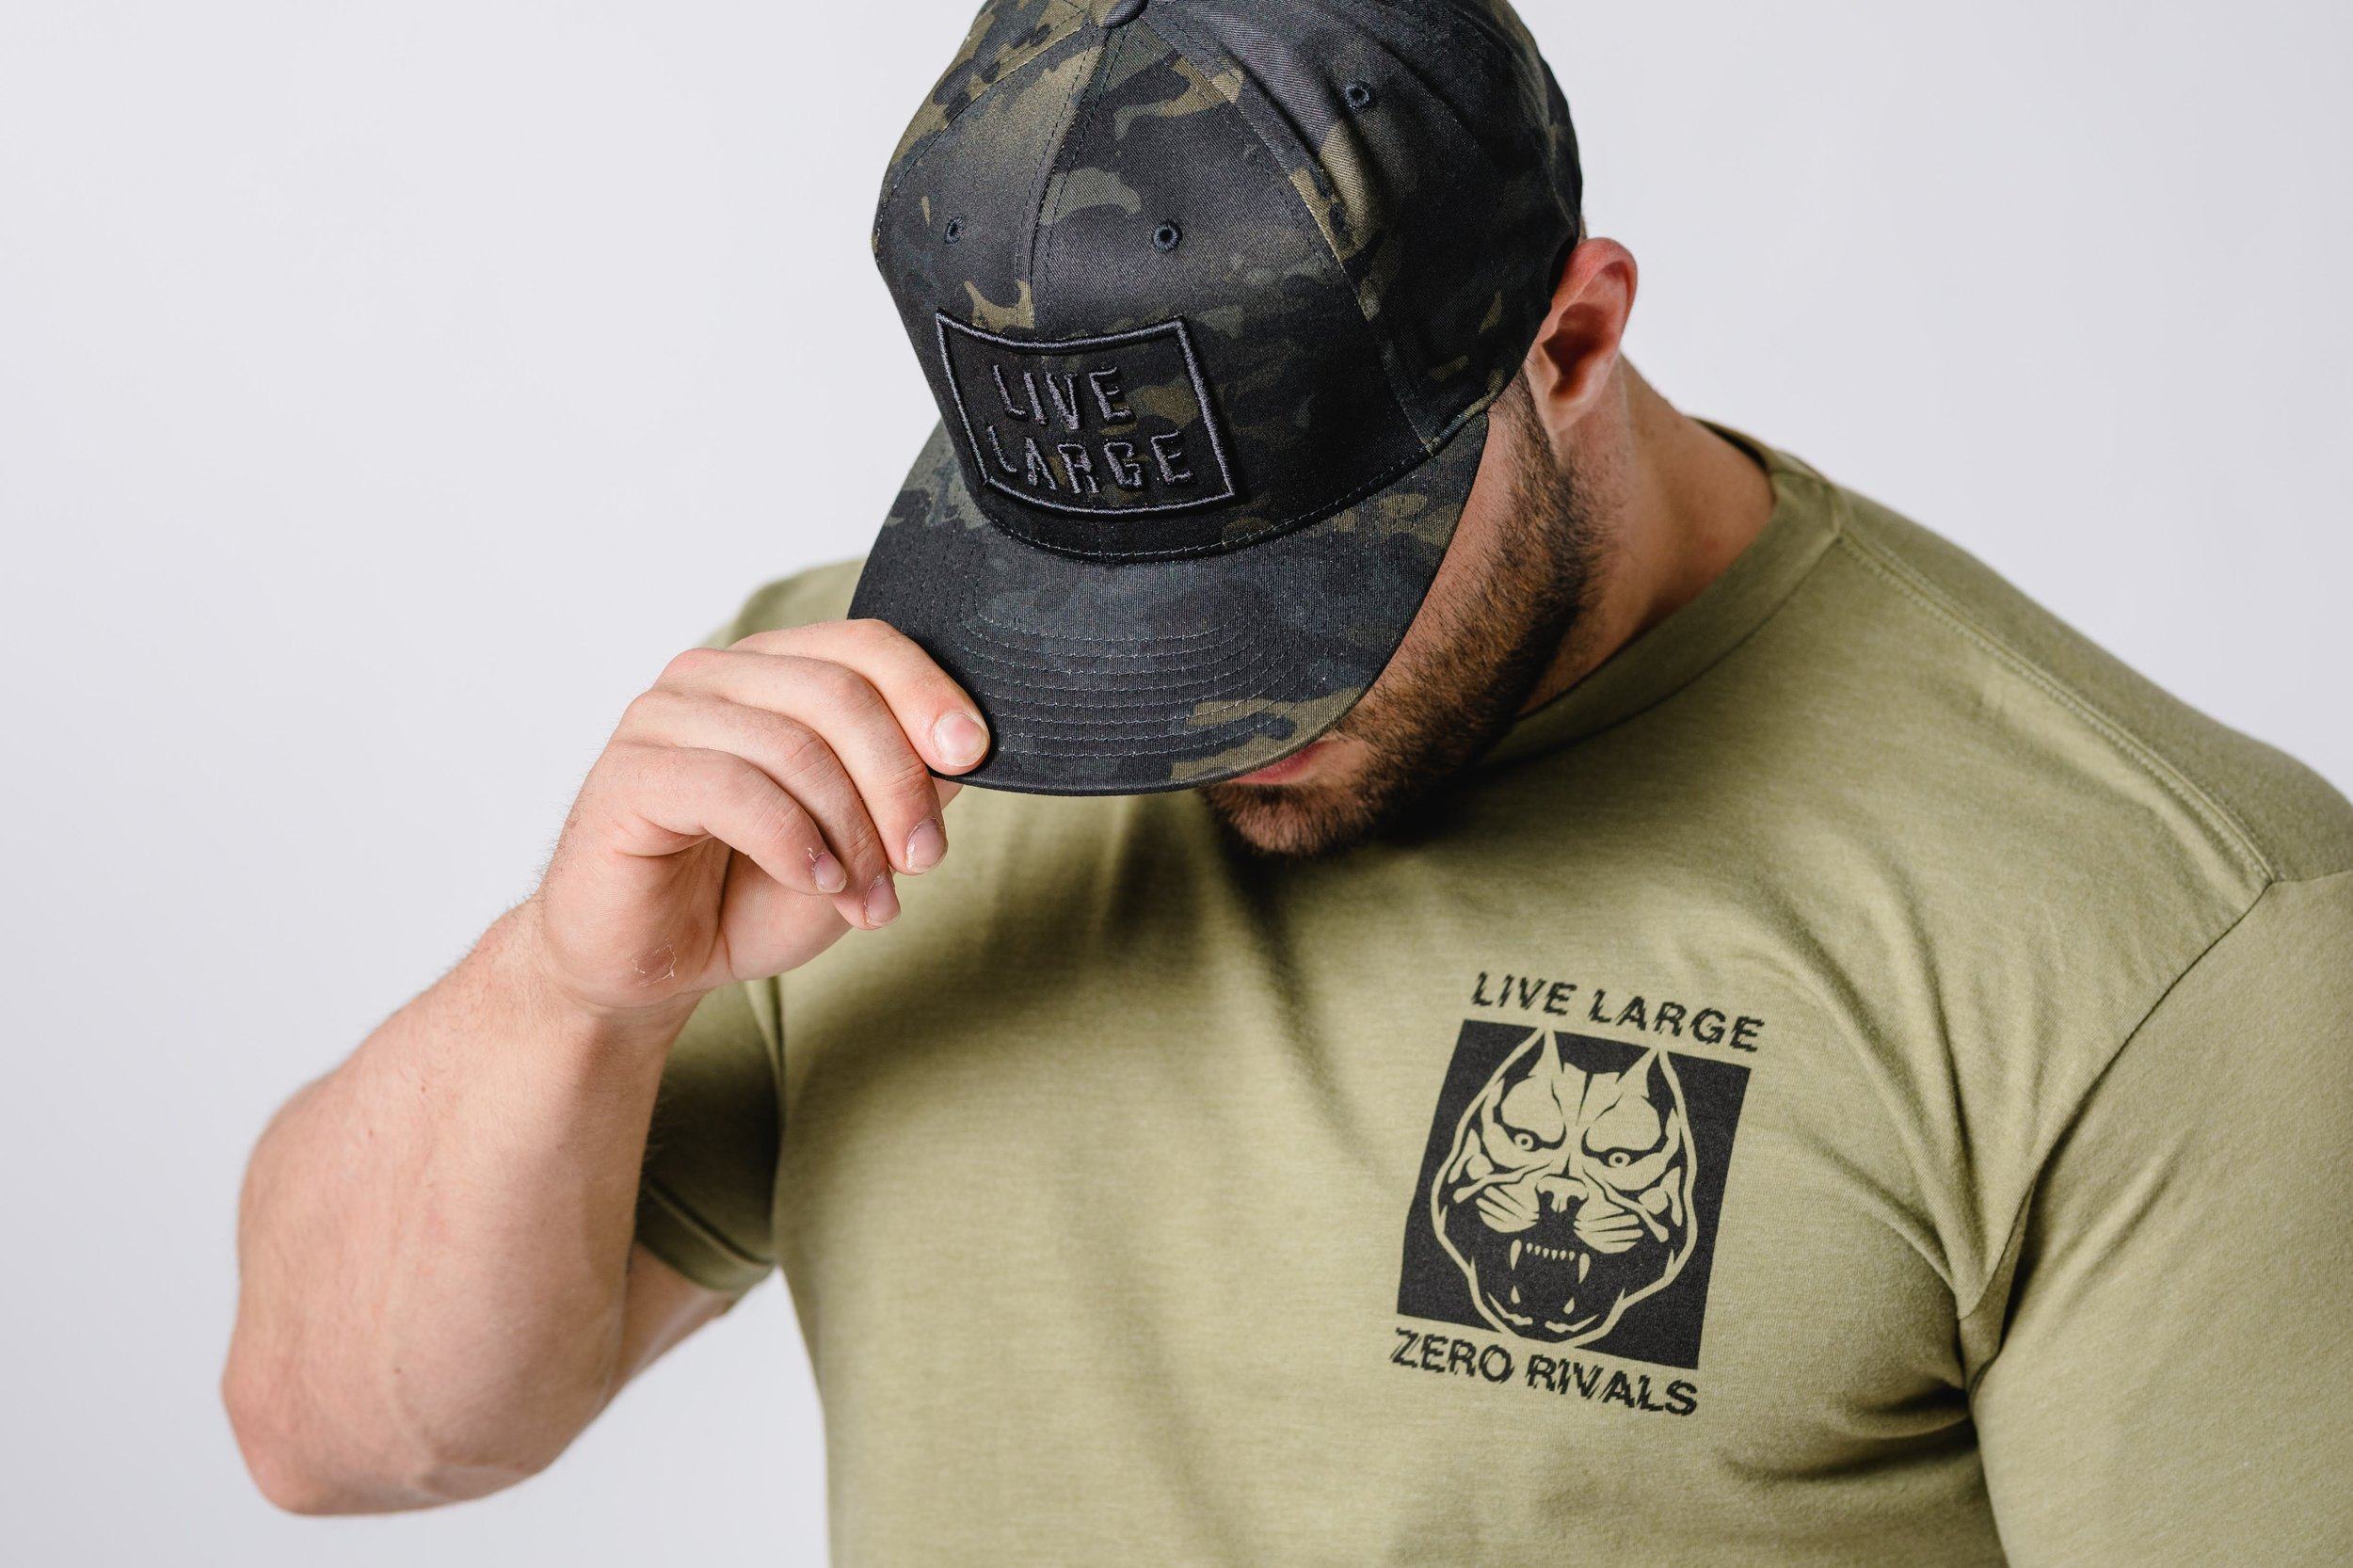 chuck army tee and hat.jpg